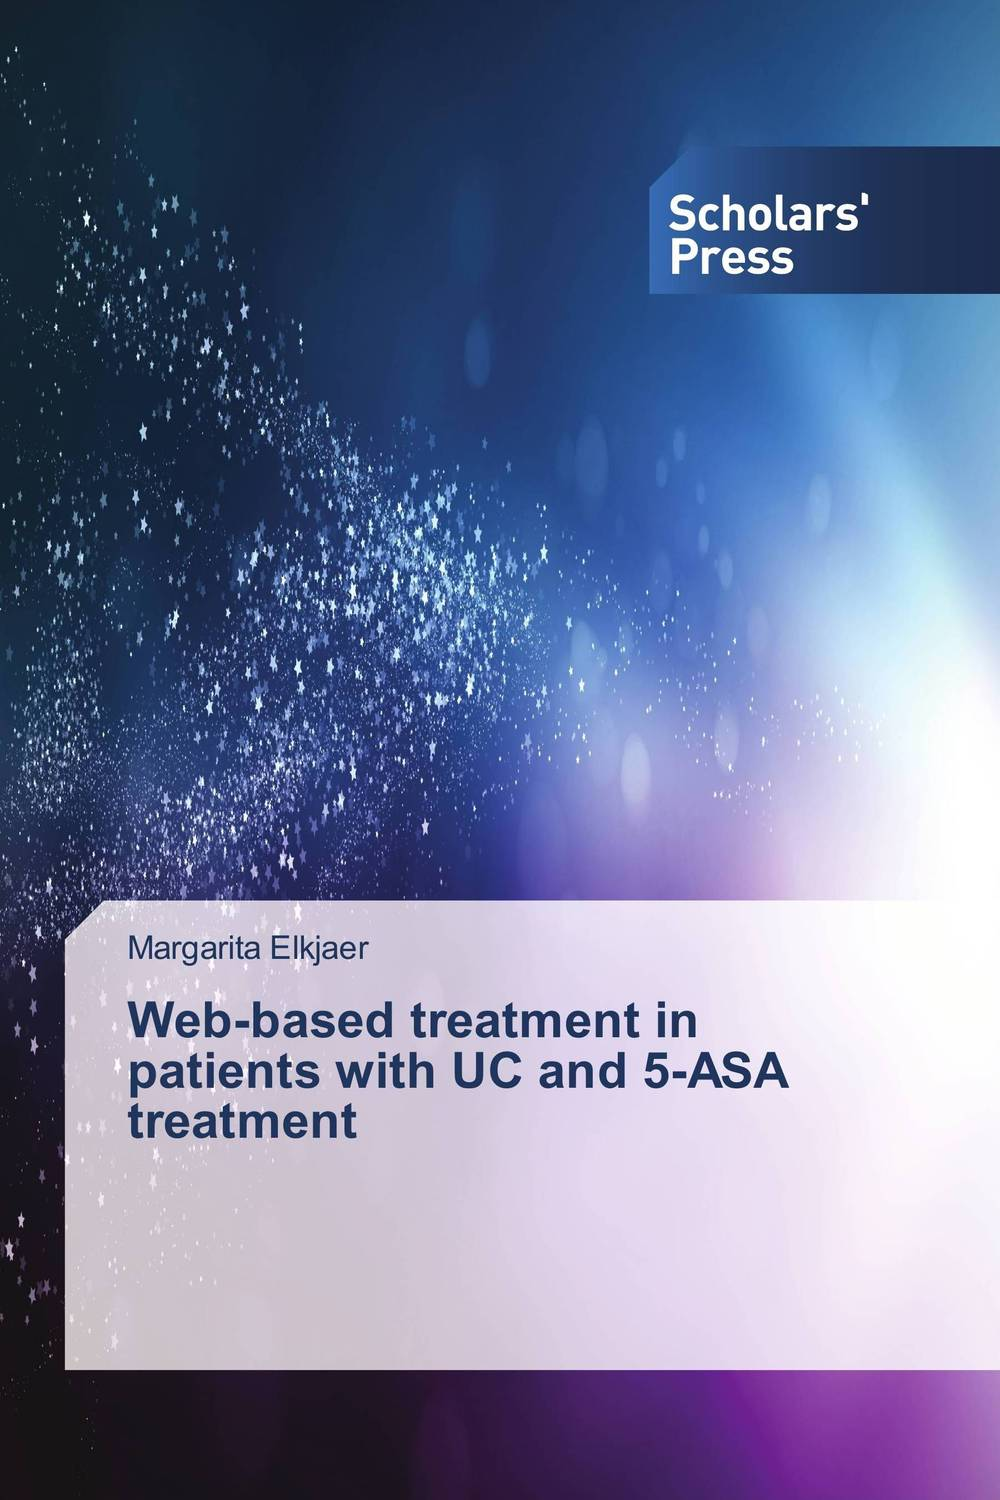 Web-based treatment in patients with UC and 5-ASA treatment overview of web based business